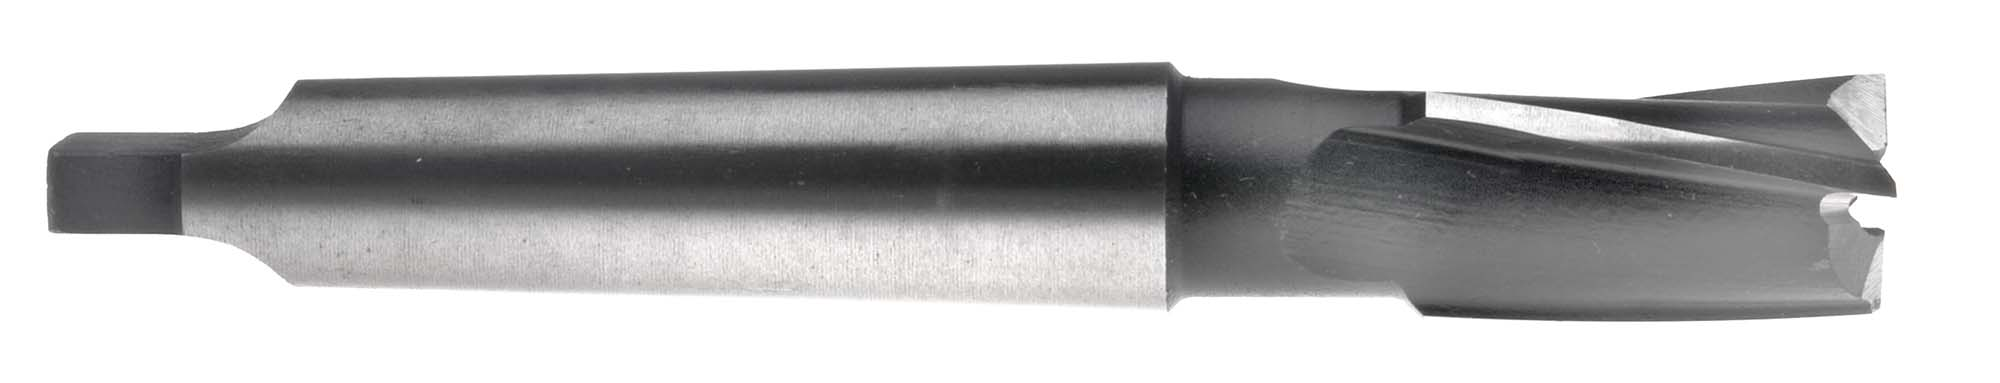 "3"" Taper Shank Counterbore, Interchangeable Pilot Type, High Speed Steel"